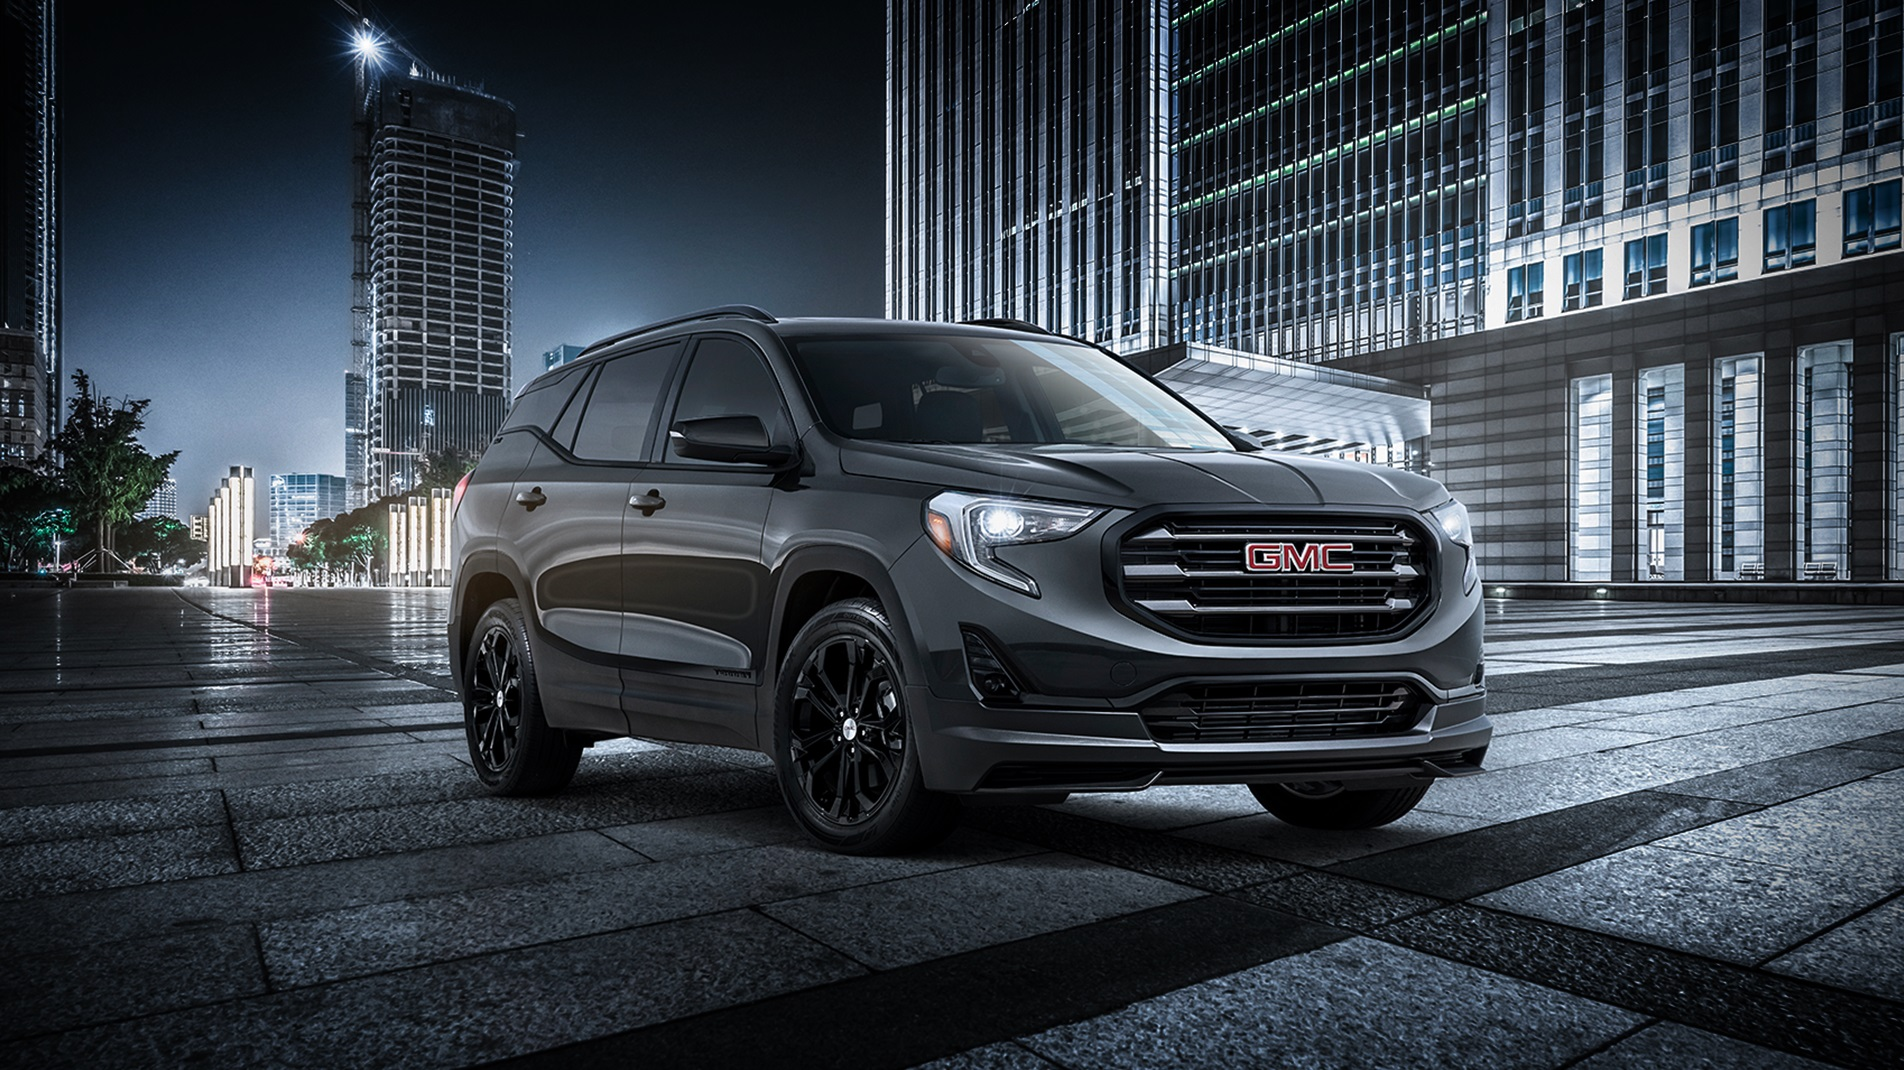 New user profiles for the 2019 GMC Terrain can save every setting